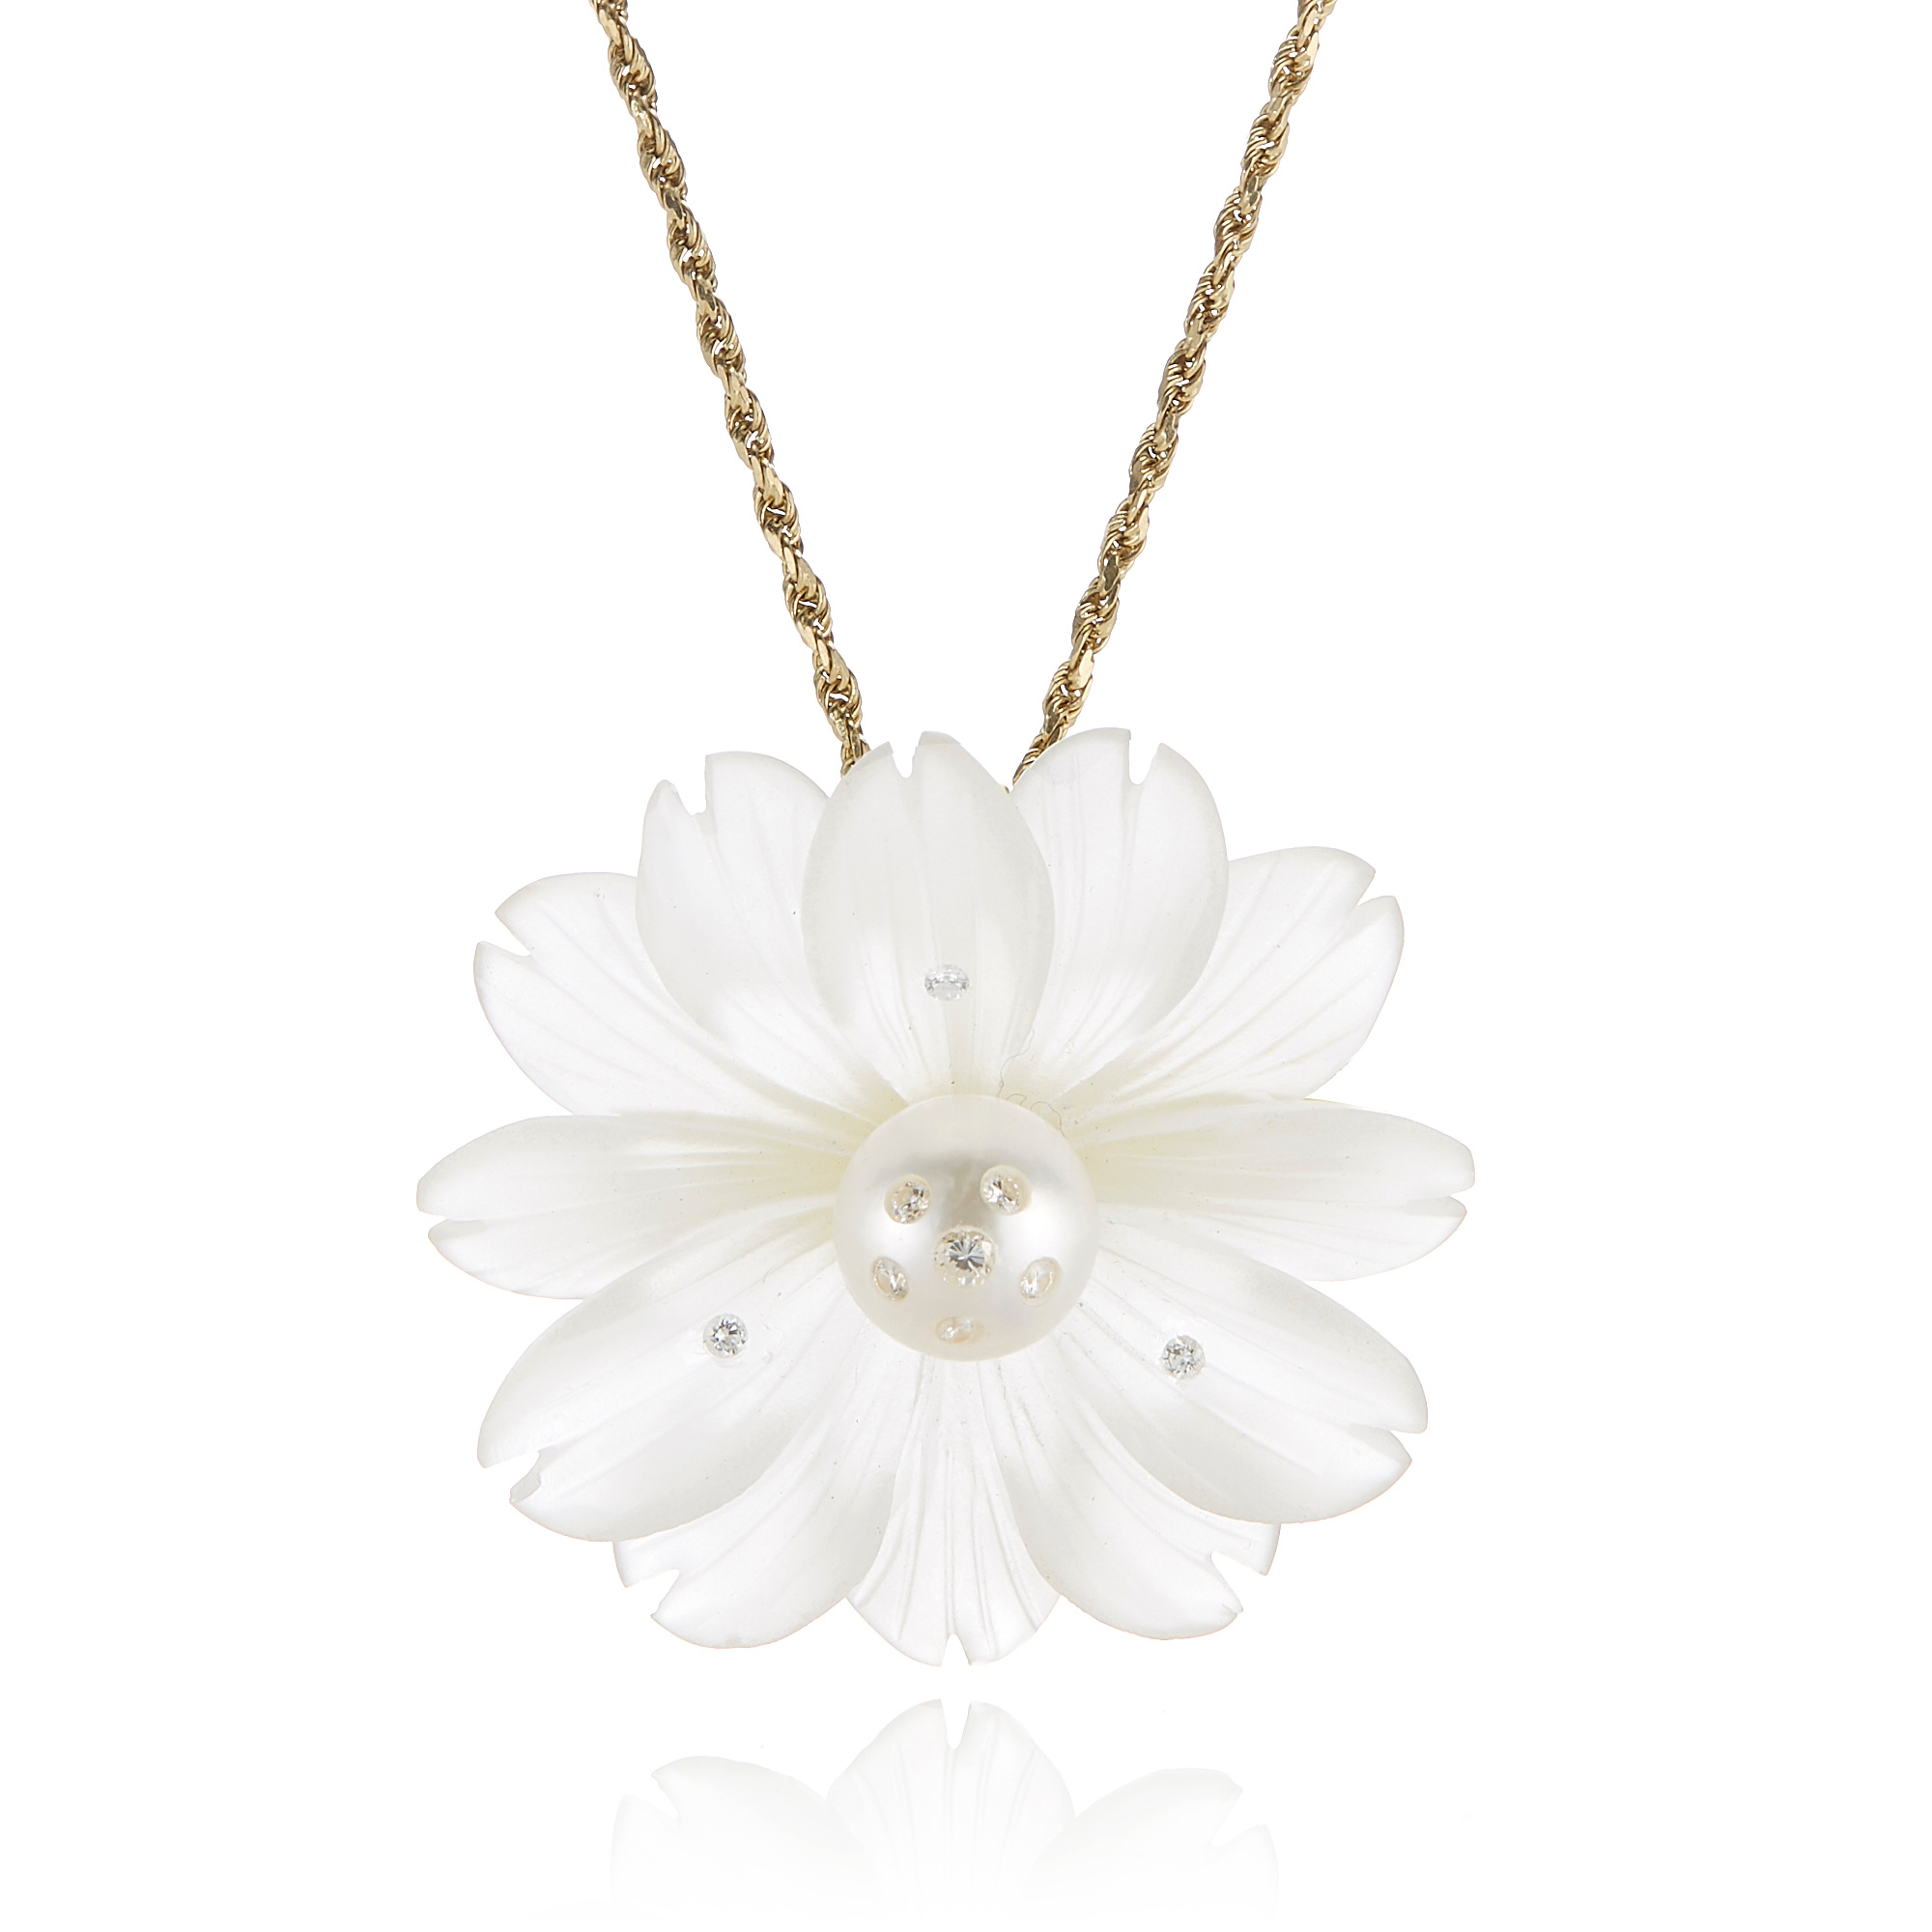 Russell Trusso Rock Crystal & Diamond Flower Pendant Necklace